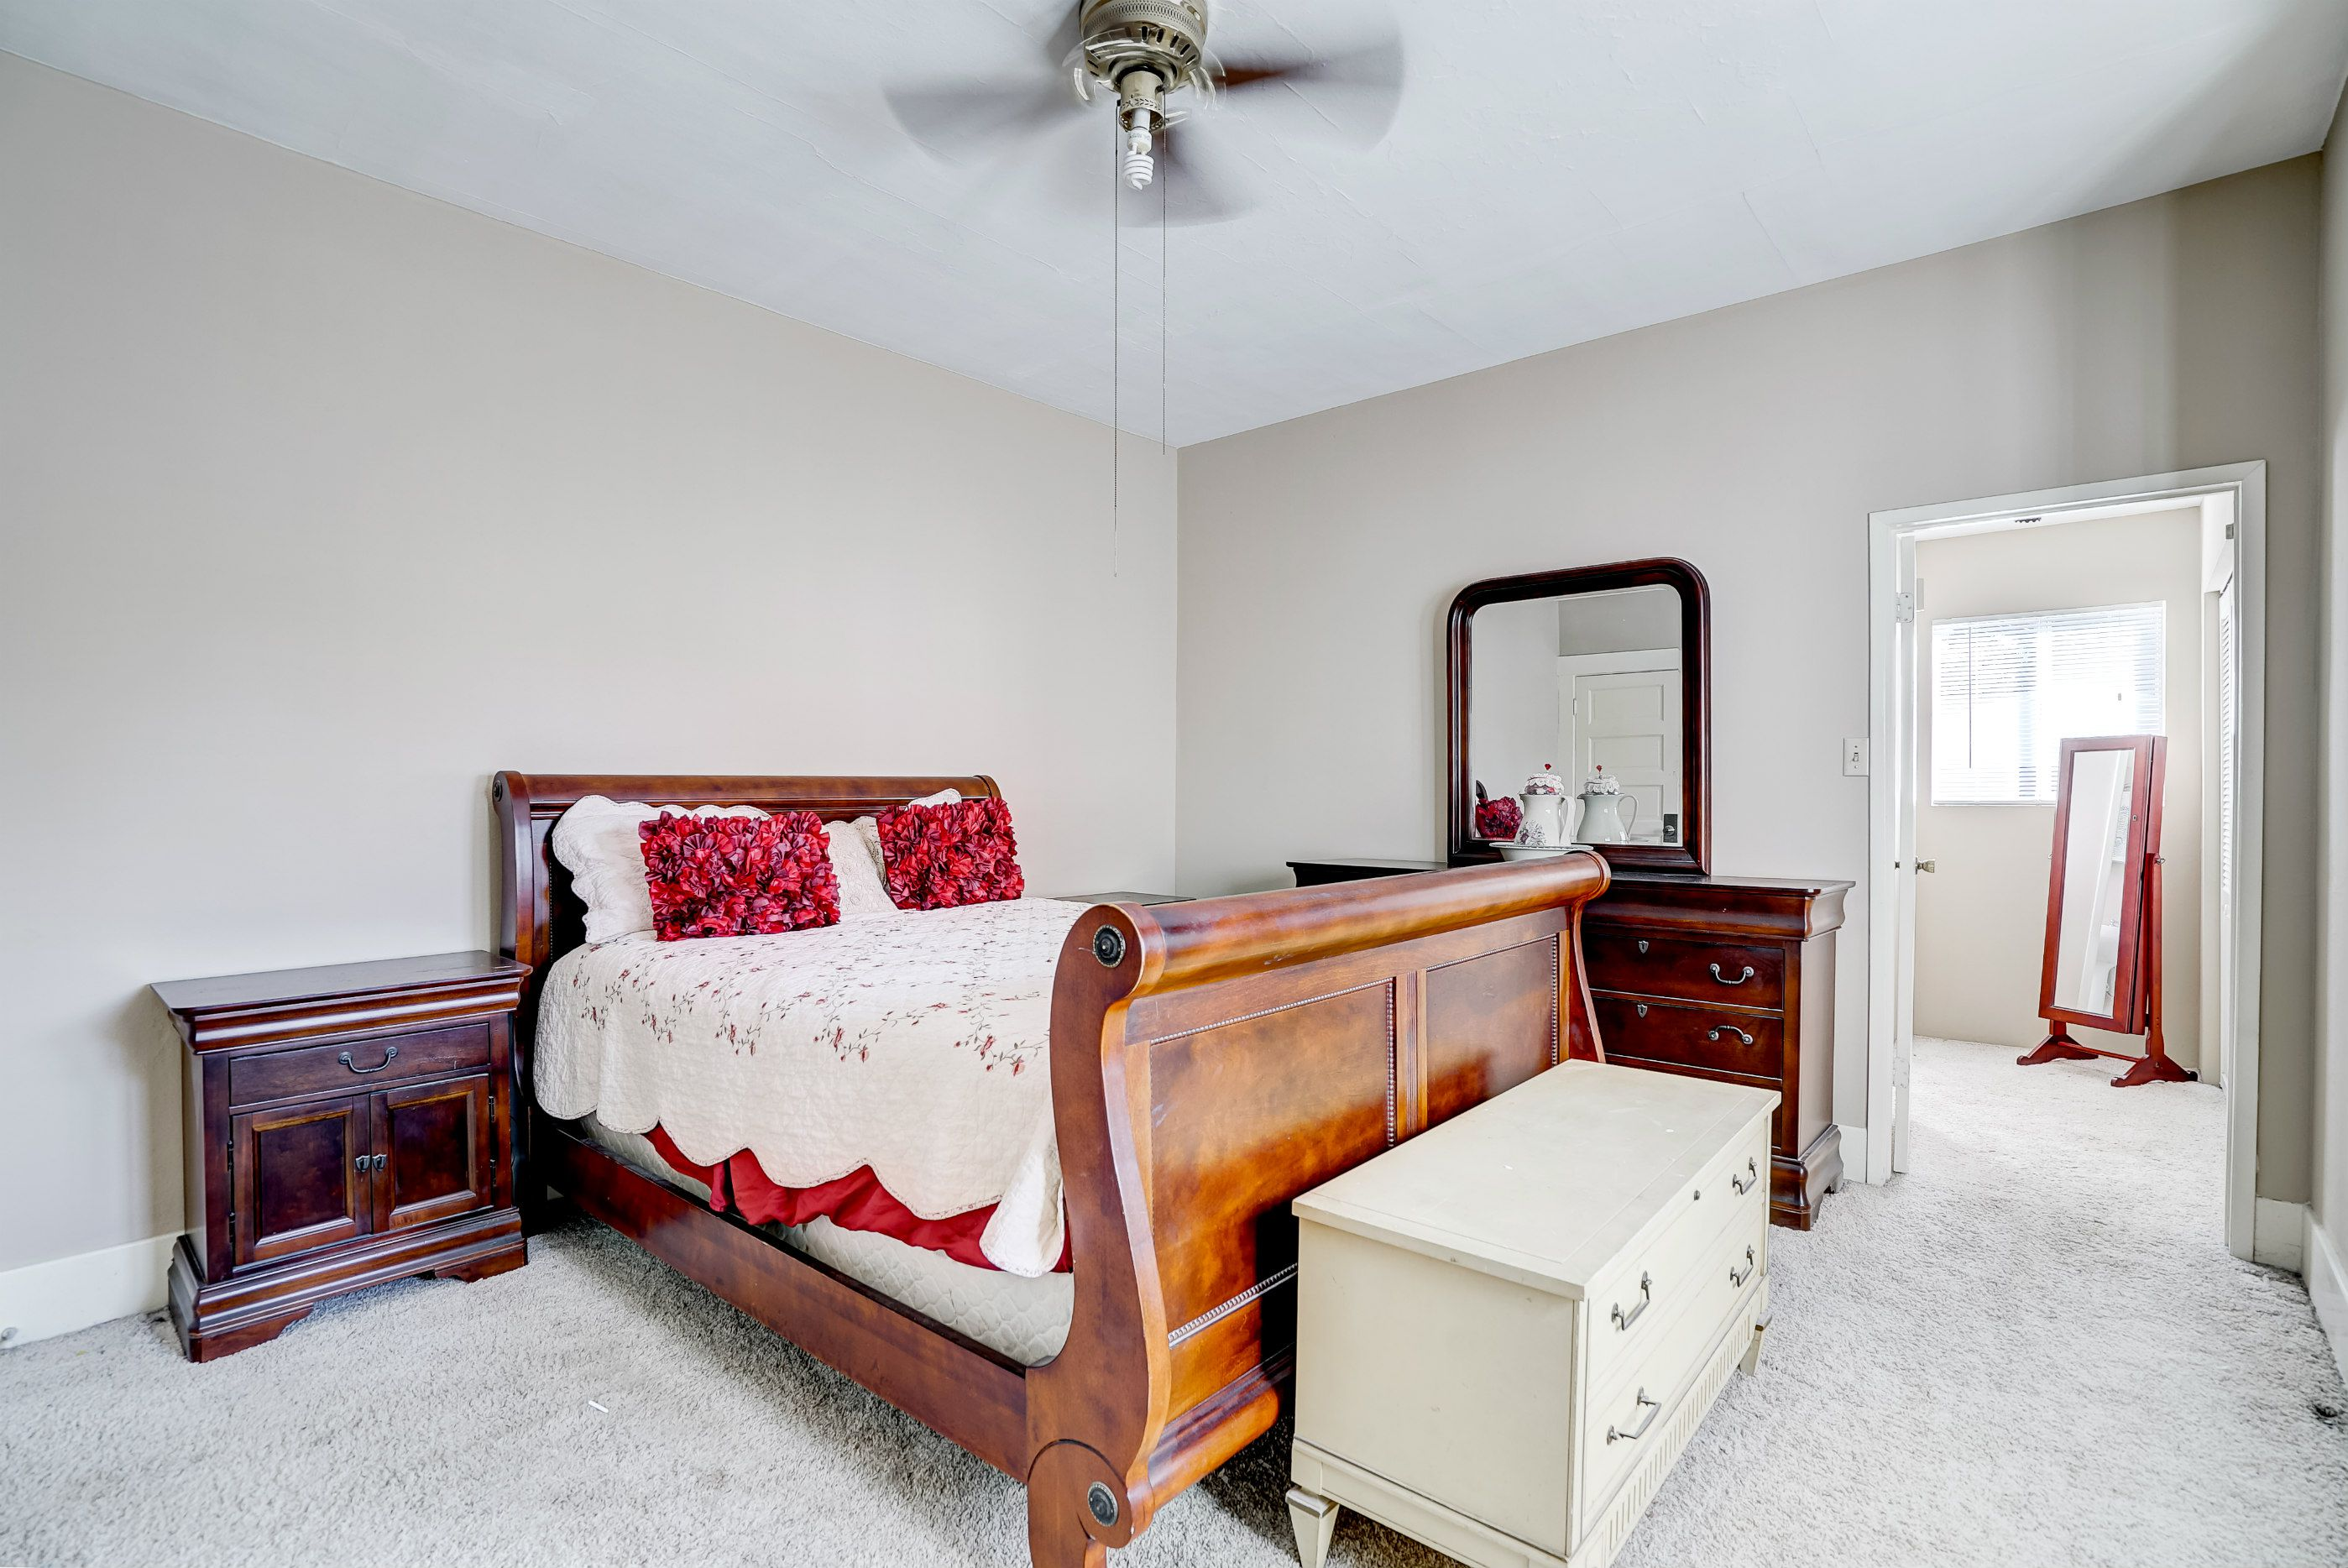 Master bedroom suite with ceiling fan, carpeting, and private master bathroom.